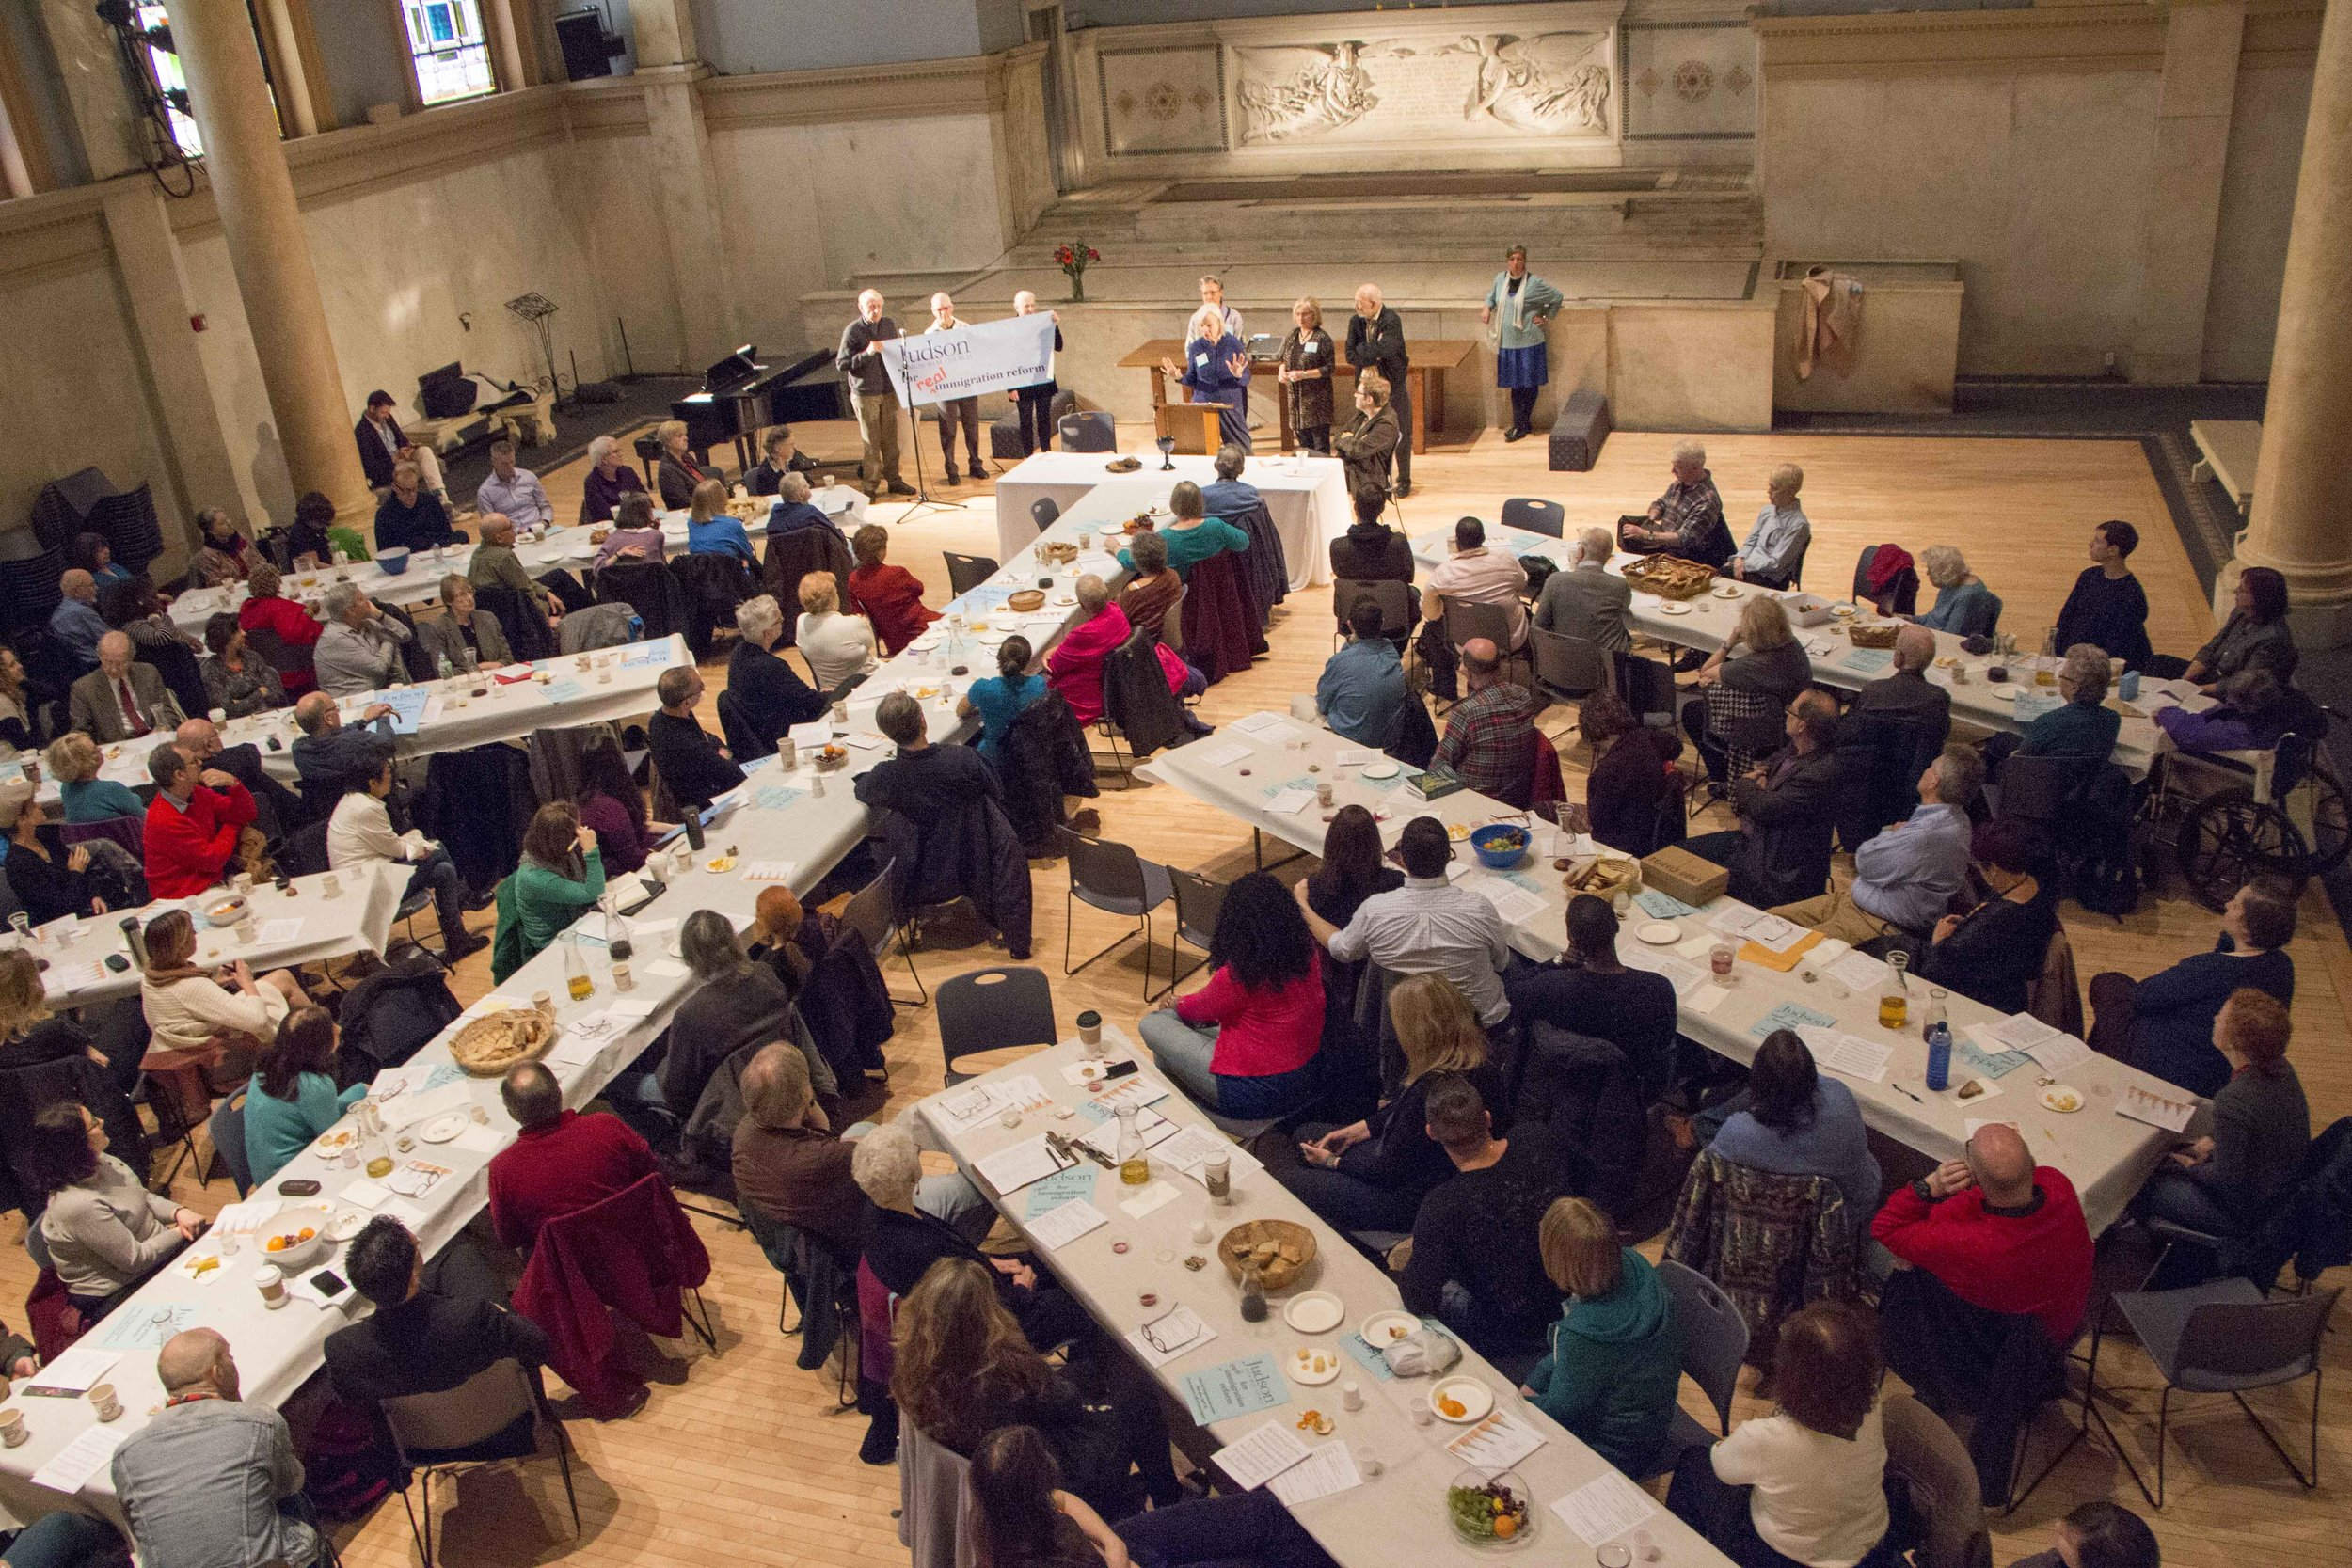 Agape is a word used to describe unconditional love.Agape Meals are part Mass, part Eucharist, part Communion, part Welcome Table.